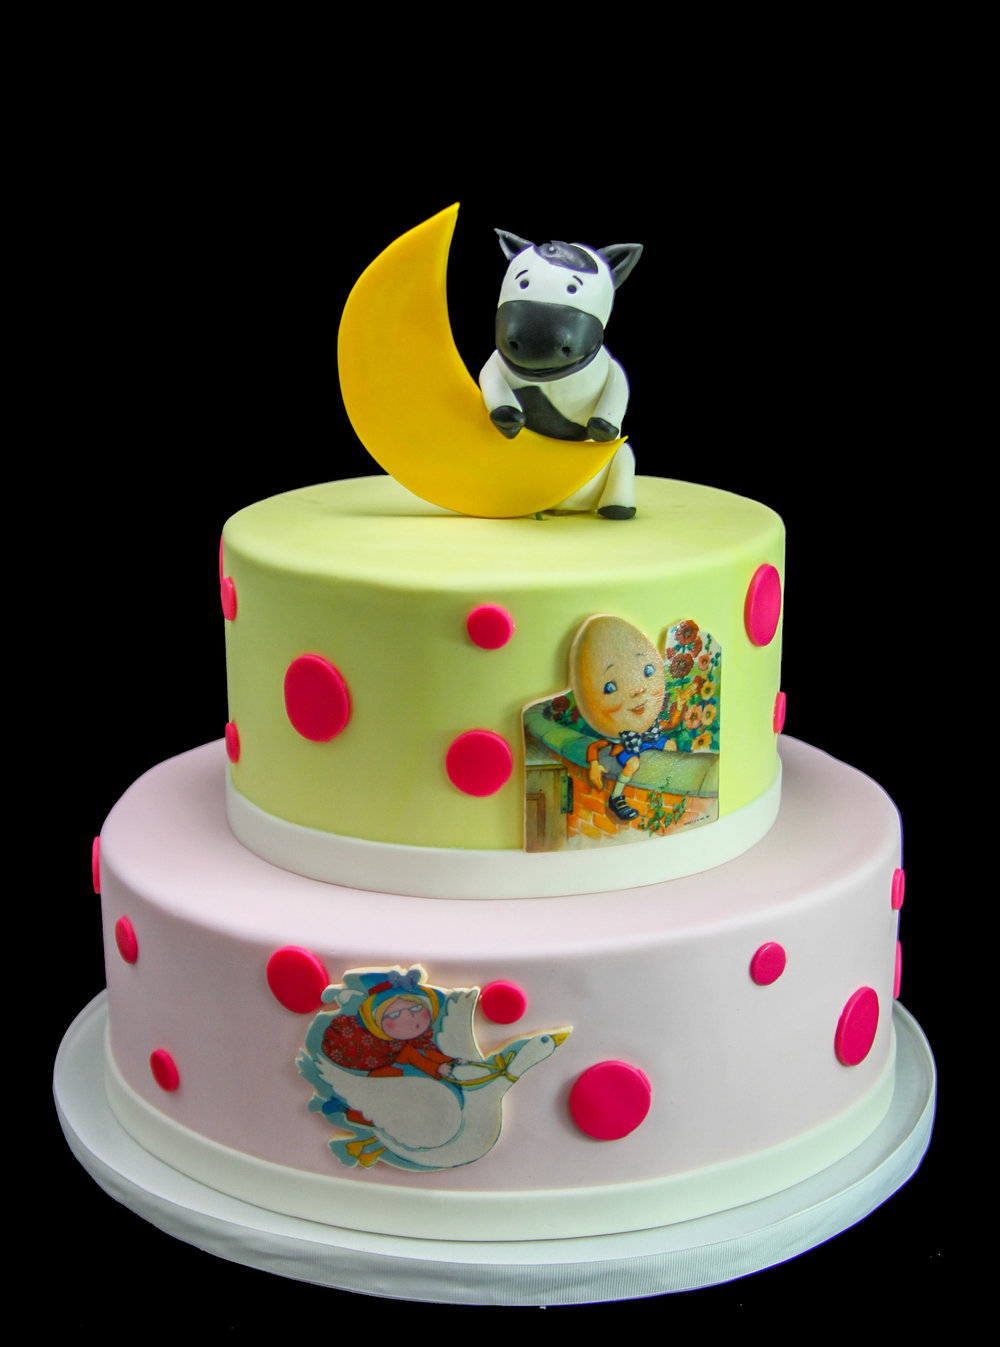 Nursery Baby Shower Cake.jpg